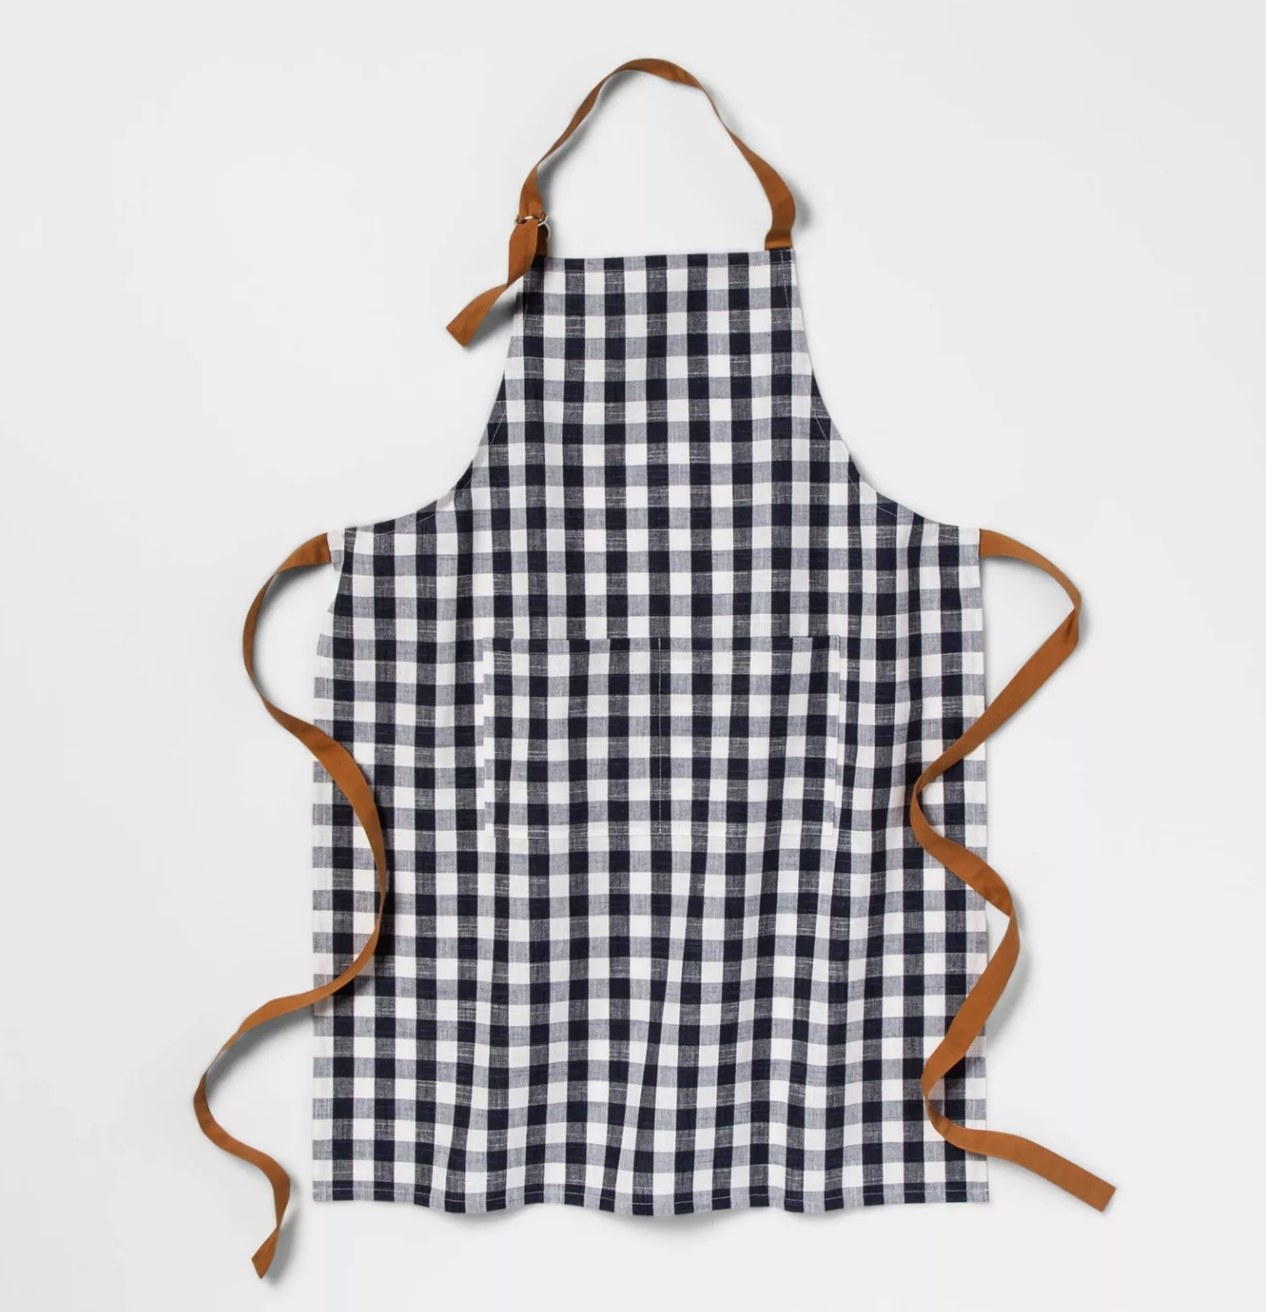 a blue and white checkered apron with tan strings